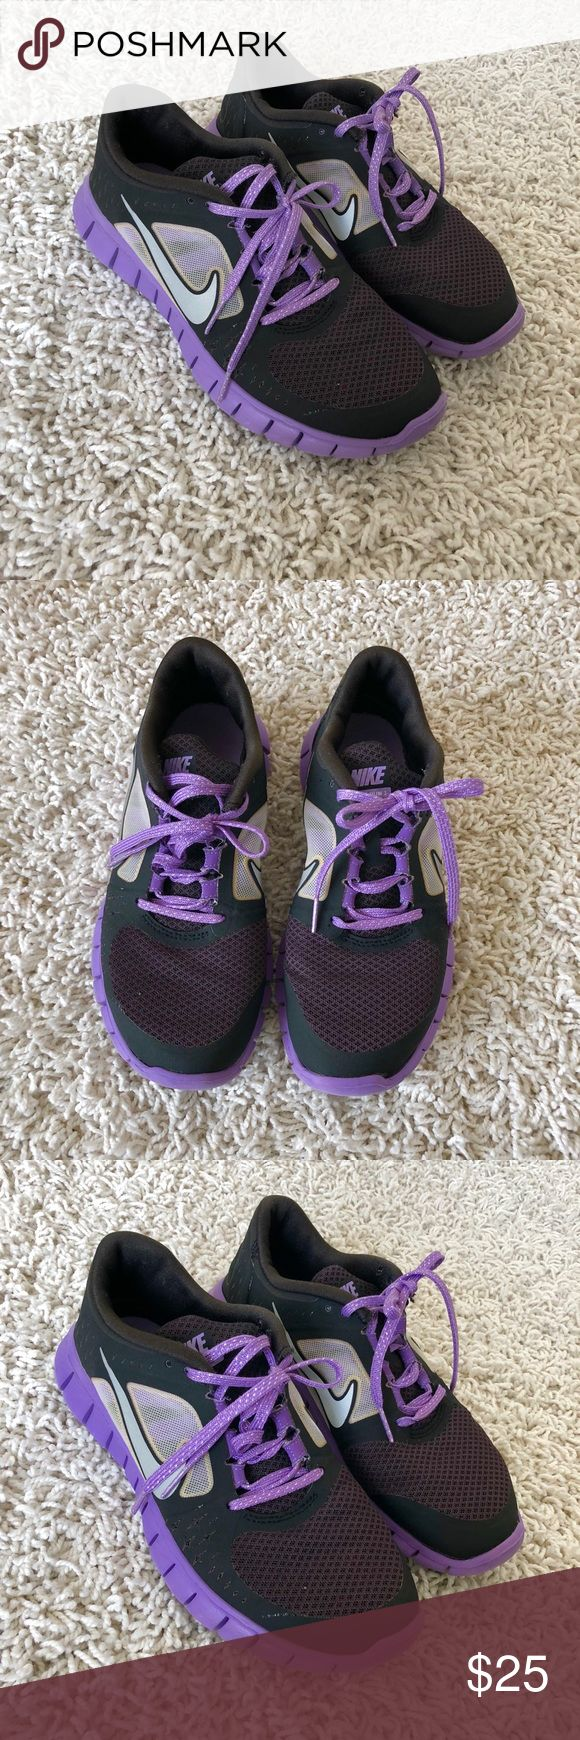 Nike Tennis Shoes Nike Tennis Shoes in Great Condition. Gorgeous purple color! Size 6. Comes from a smoke and pet free home. I ship same or next day! Make an offer :) Nike Shoes Athletic Shoes http://feedproxy.google.com/fashionshoes11